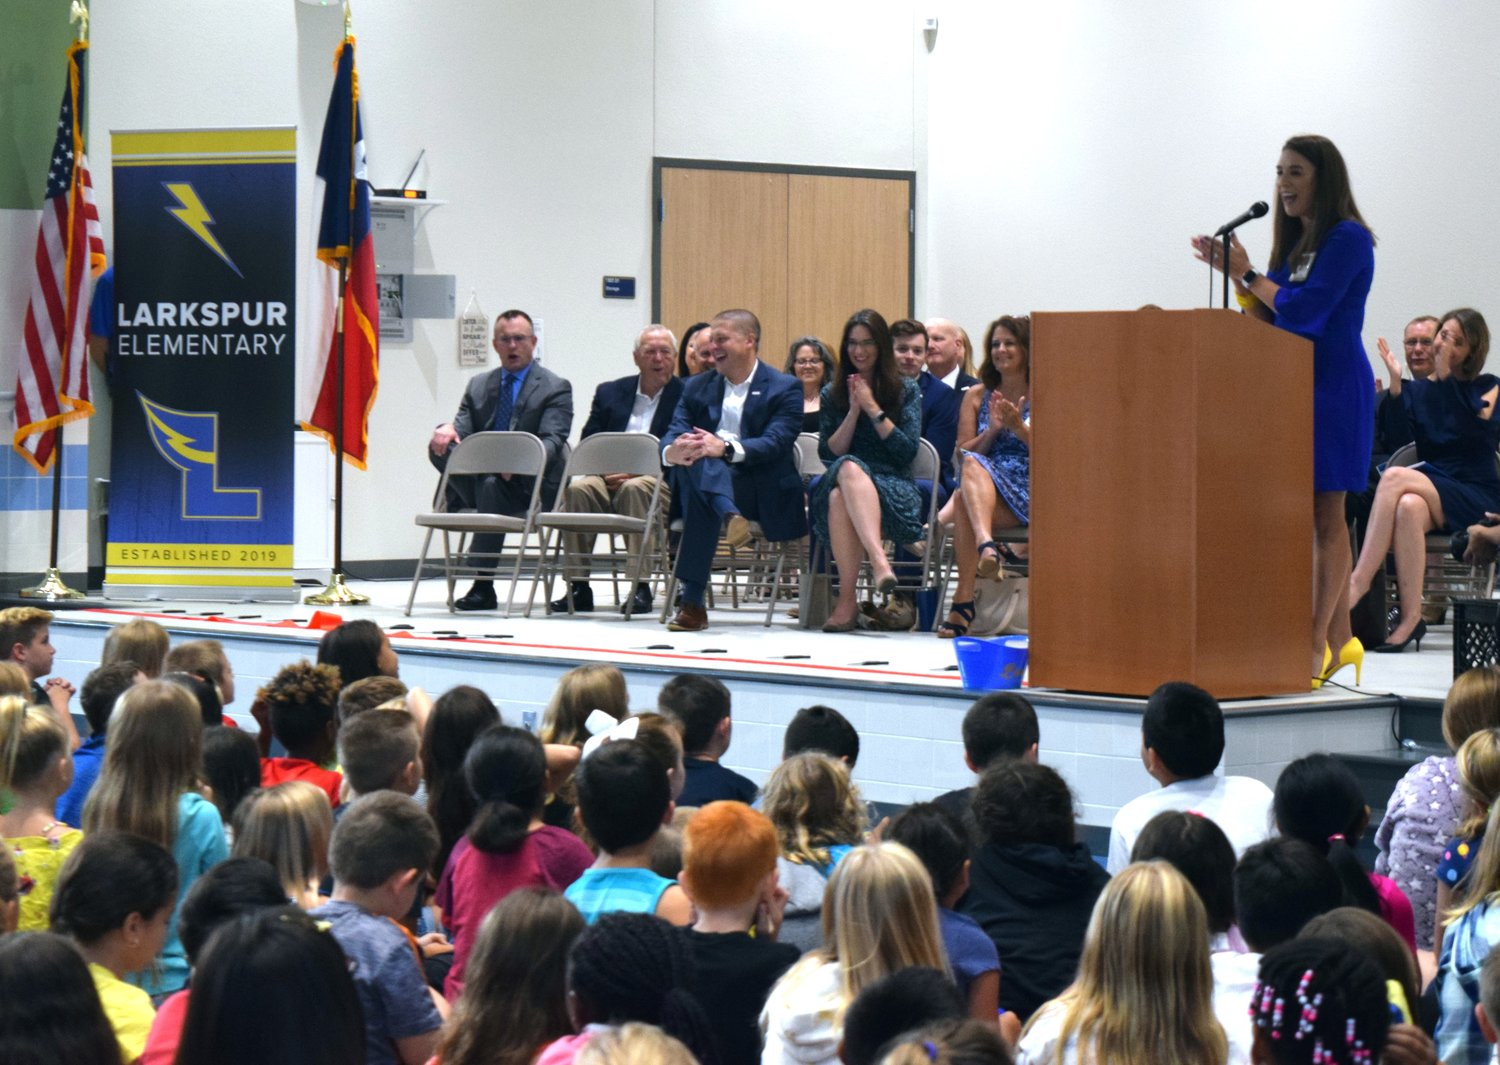 Larkspur Elementary Principal Tracie Montanio spoke to students, parents, faculty and Leander Independent School Board members at the school's dedication ceremony on Friday.